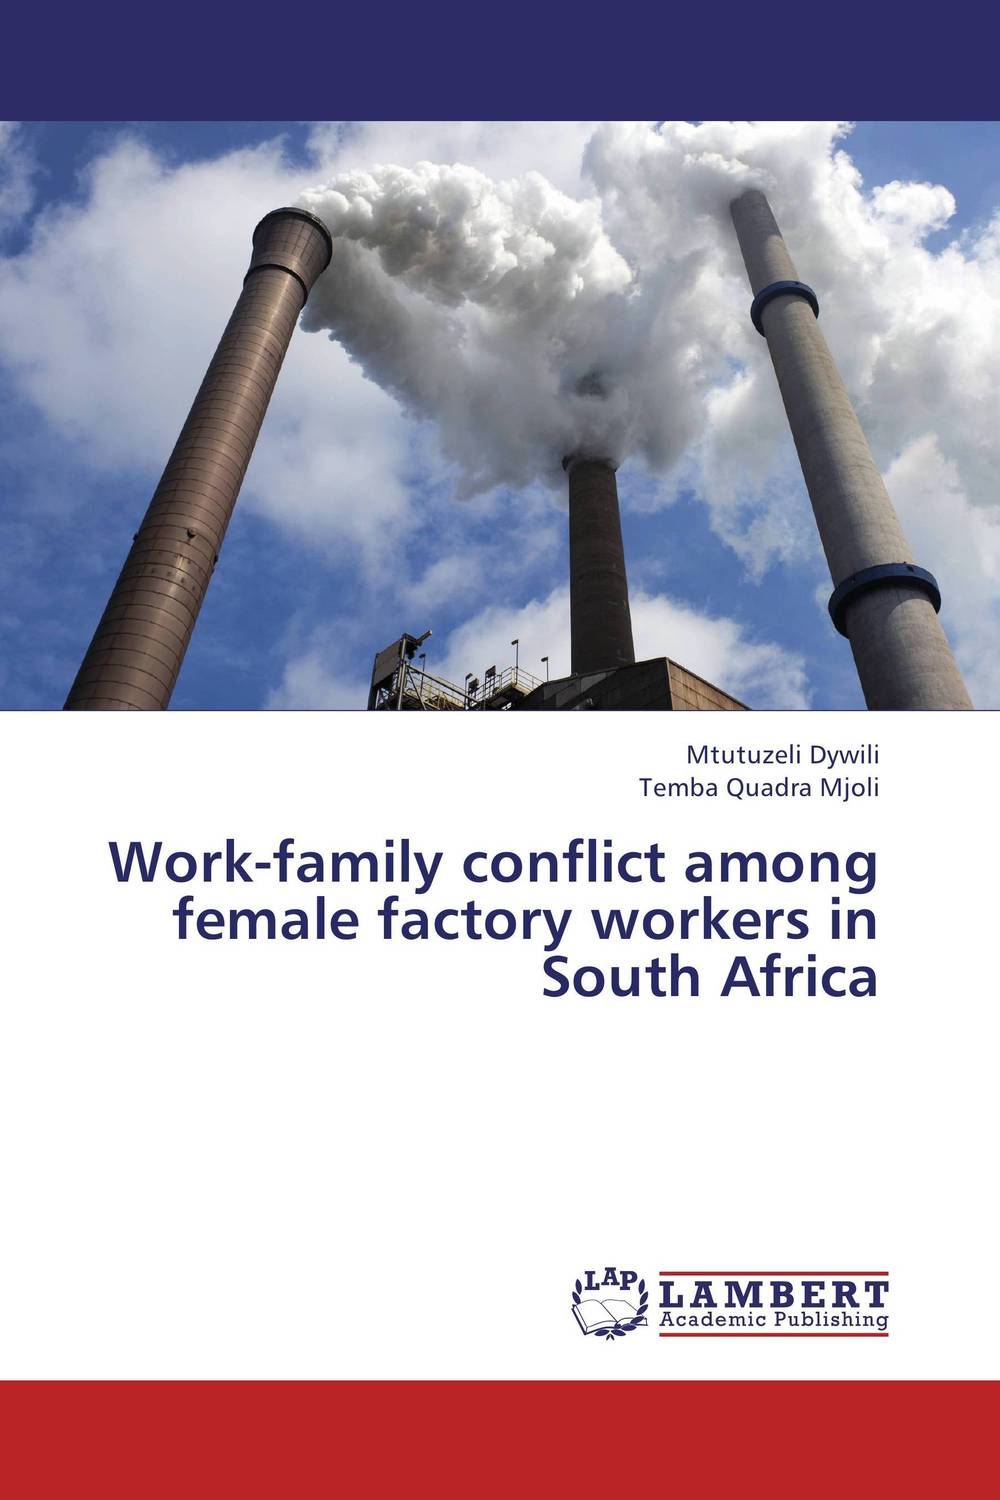 Work-family conflict among female factory workers in South Africa sadiq sagheer job stress role conflict work life balance impacts on sales personnel